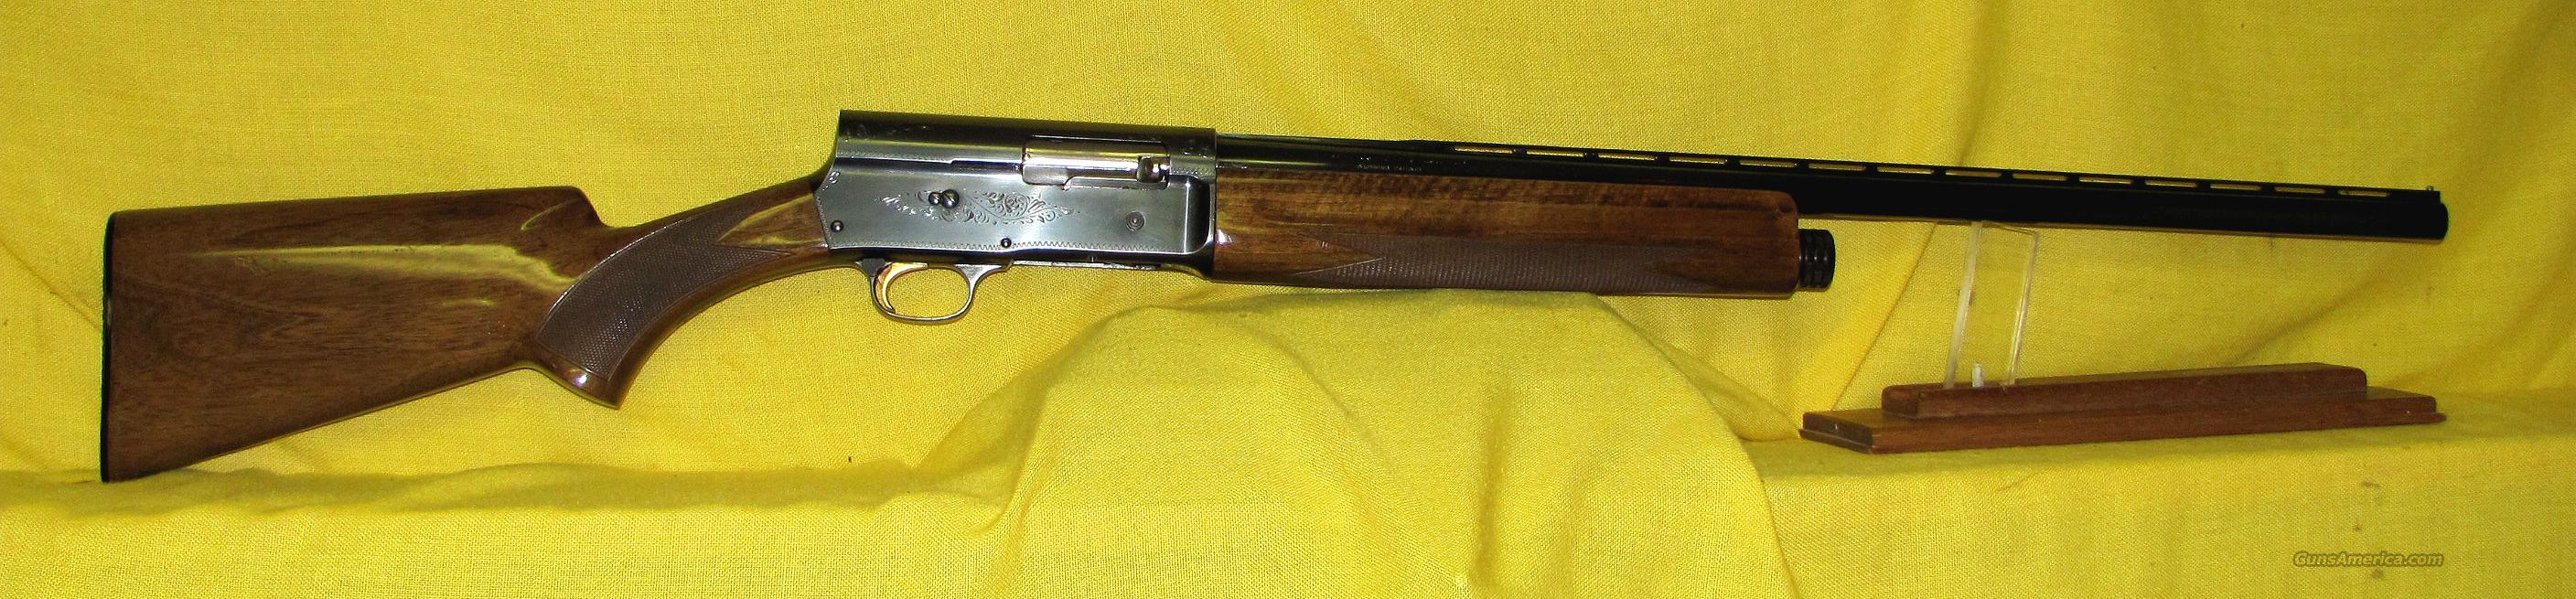 "BROWNING A5 LIGHT 12GA 26"" BBL  Guns > Shotguns > Browning Shotguns > Autoloaders > Hunting"